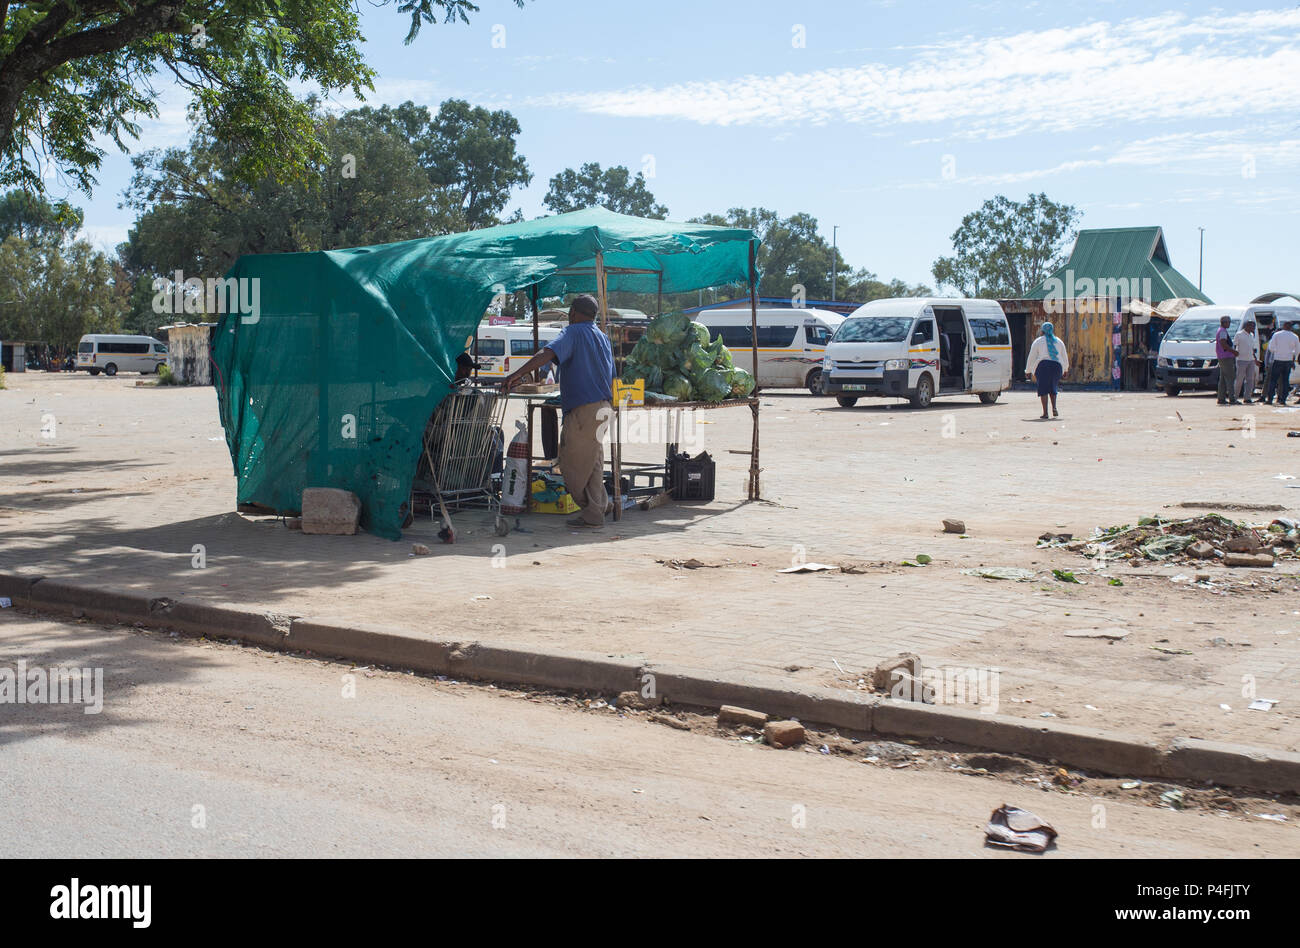 Rural African taxi rank with parked taxis and fruit and vegetable stall with vendor in Mahikeng, South Africa - Stock Image